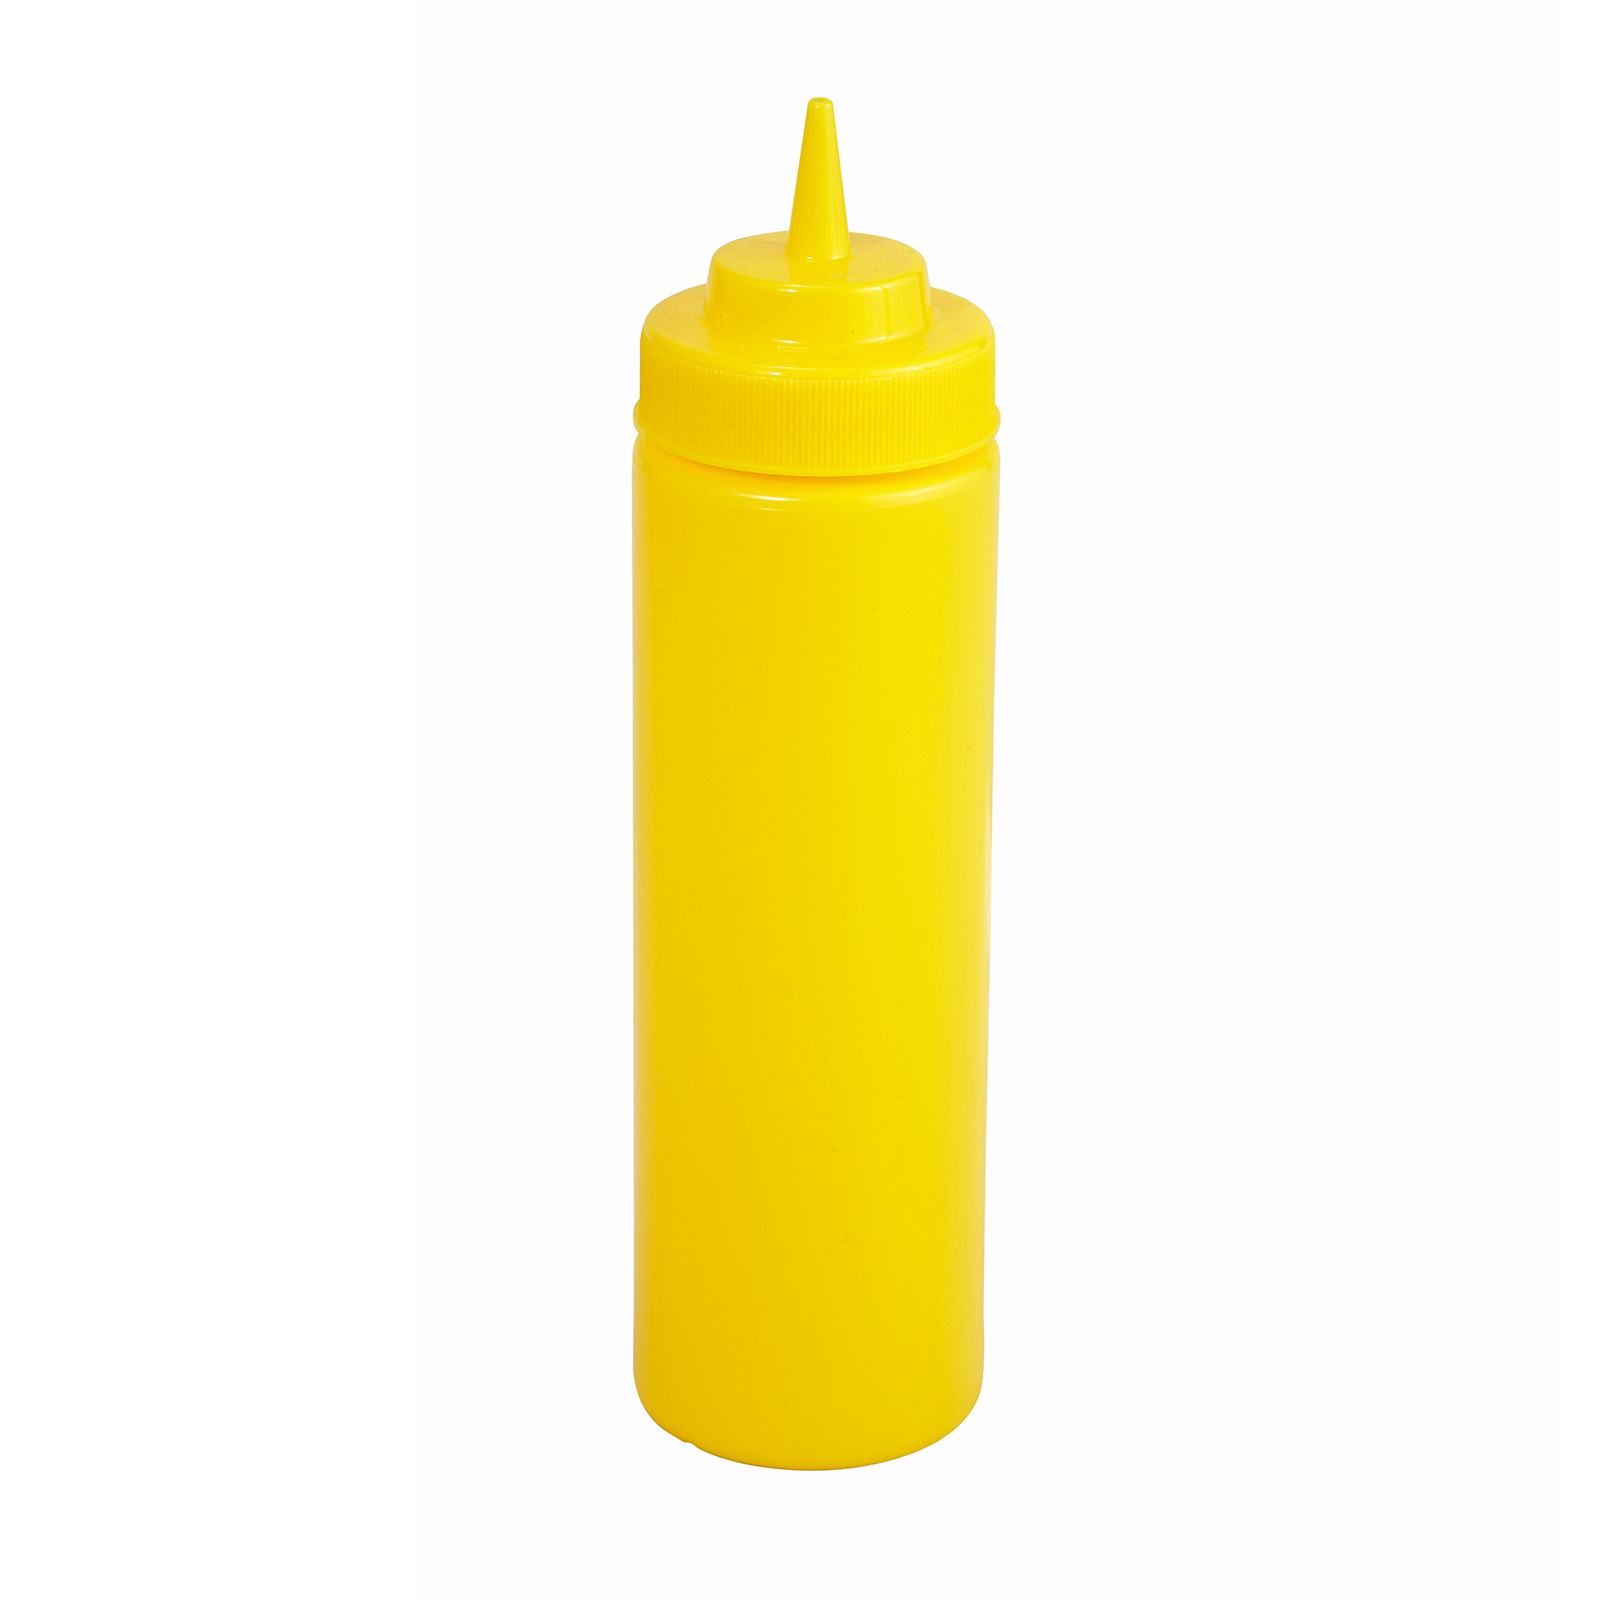 Winco PSW-24Y squeeze bottle